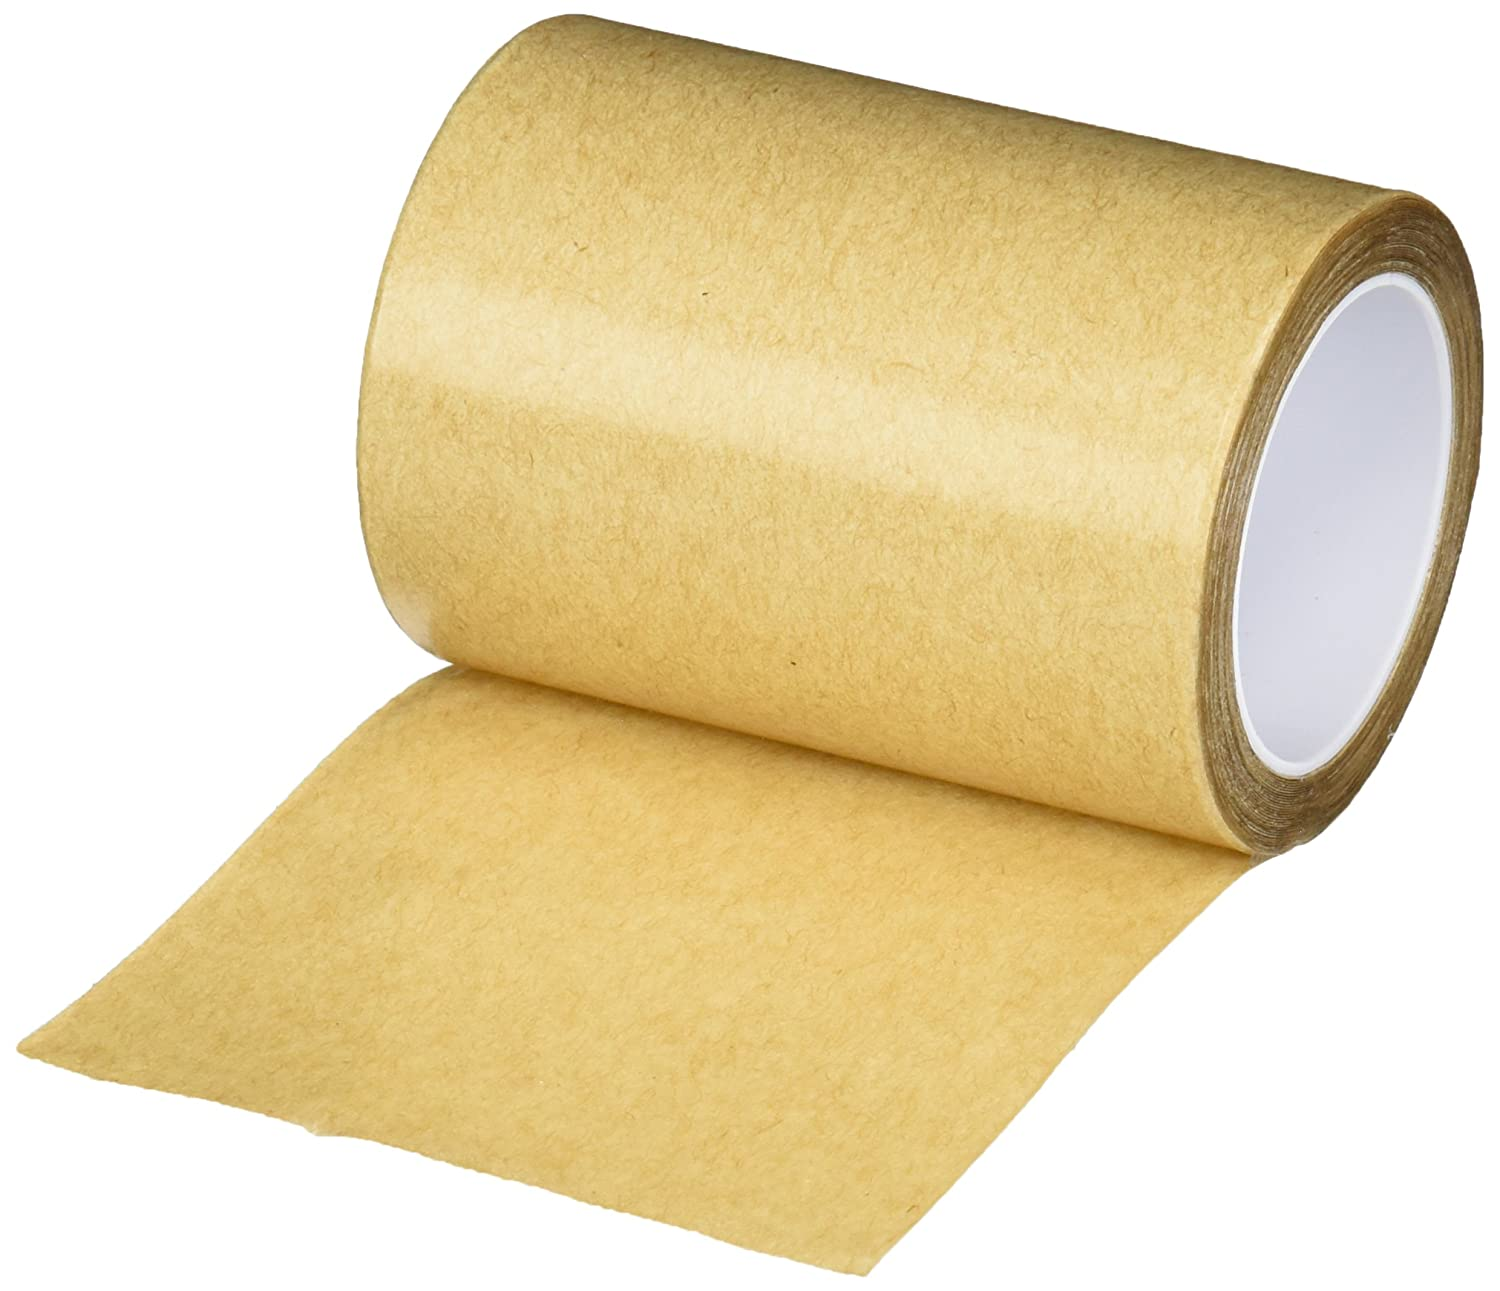 3M Adhesive Transfer Tape 950 3 Wide 5 yd CASE OF 2 Transparent Length 3 Wide 3-5-950 Pack of 2